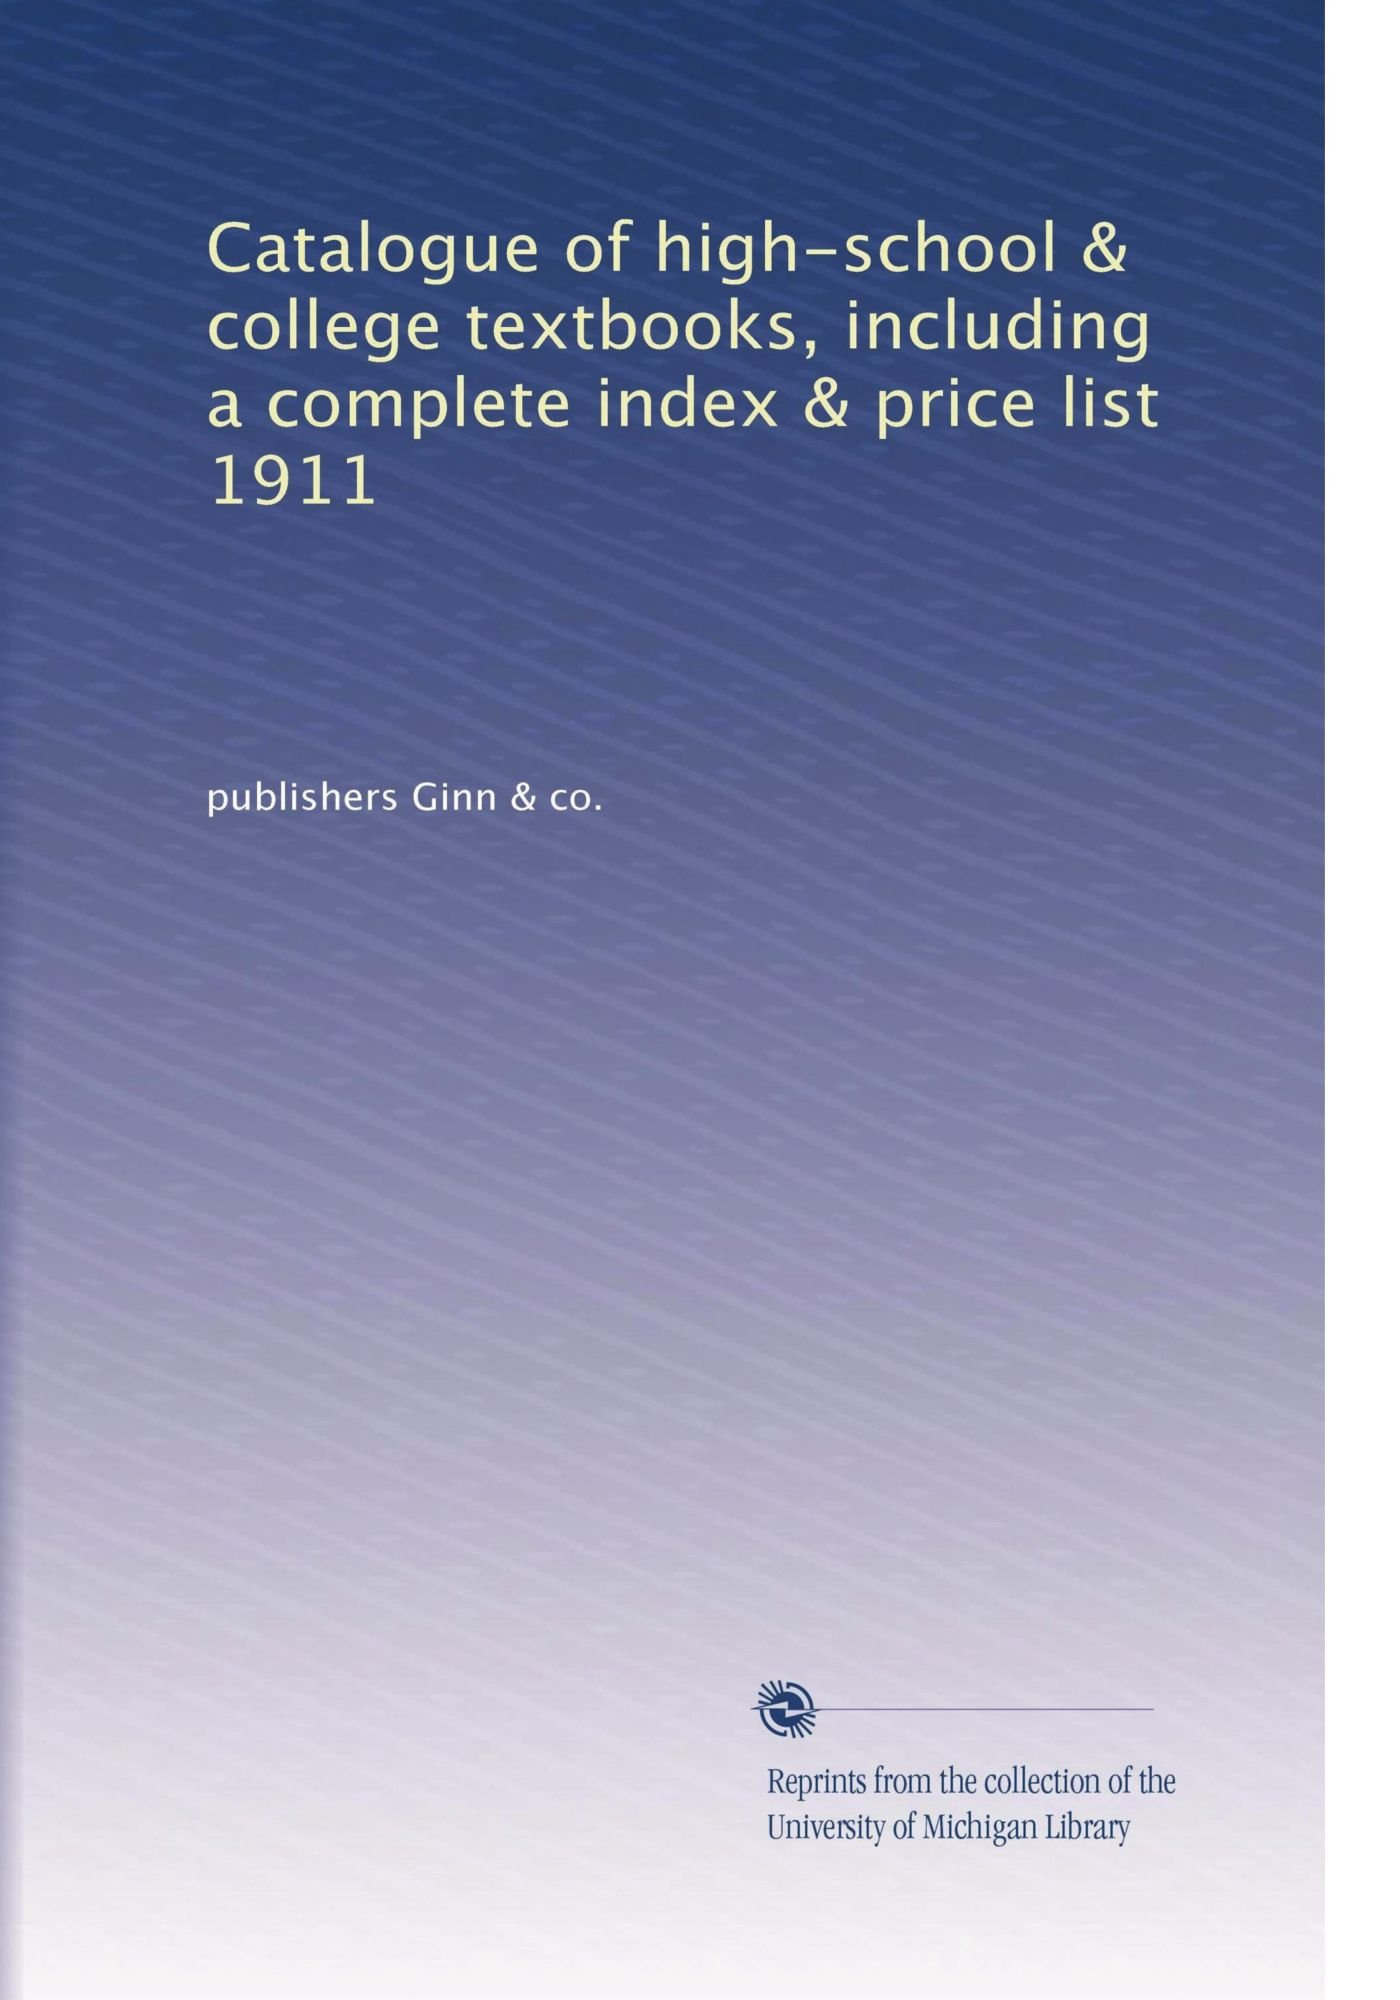 Download Catalogue of high-school & college textbooks, including a complete index & price list 1911 PDF